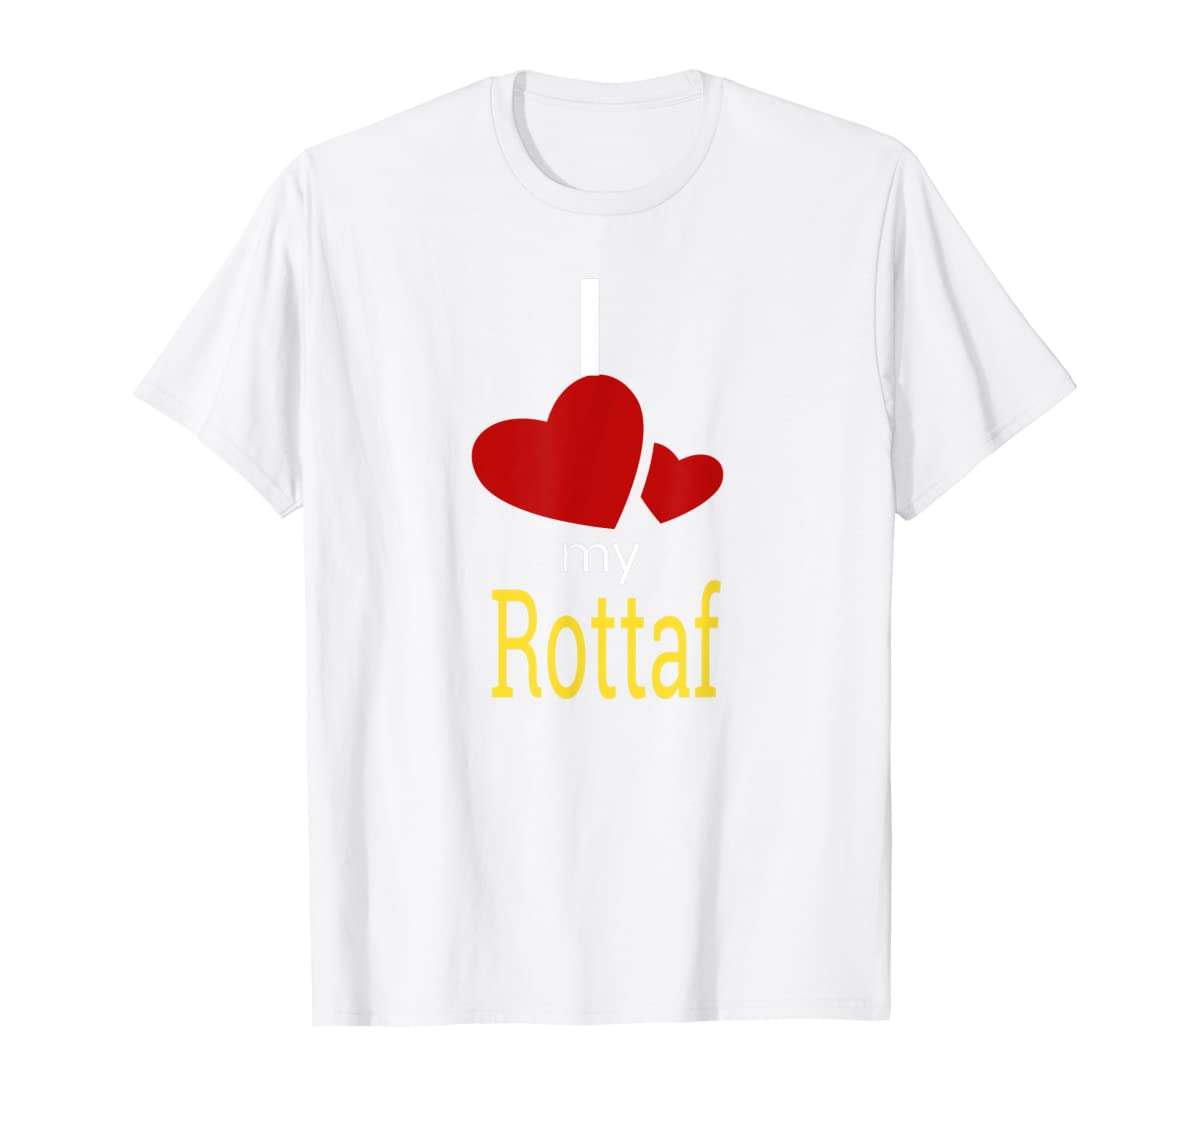 Rottaf Dog Shirt Love Rottweiler + Afghan Hound =  T-Shirt-Men's T-Shirt-White